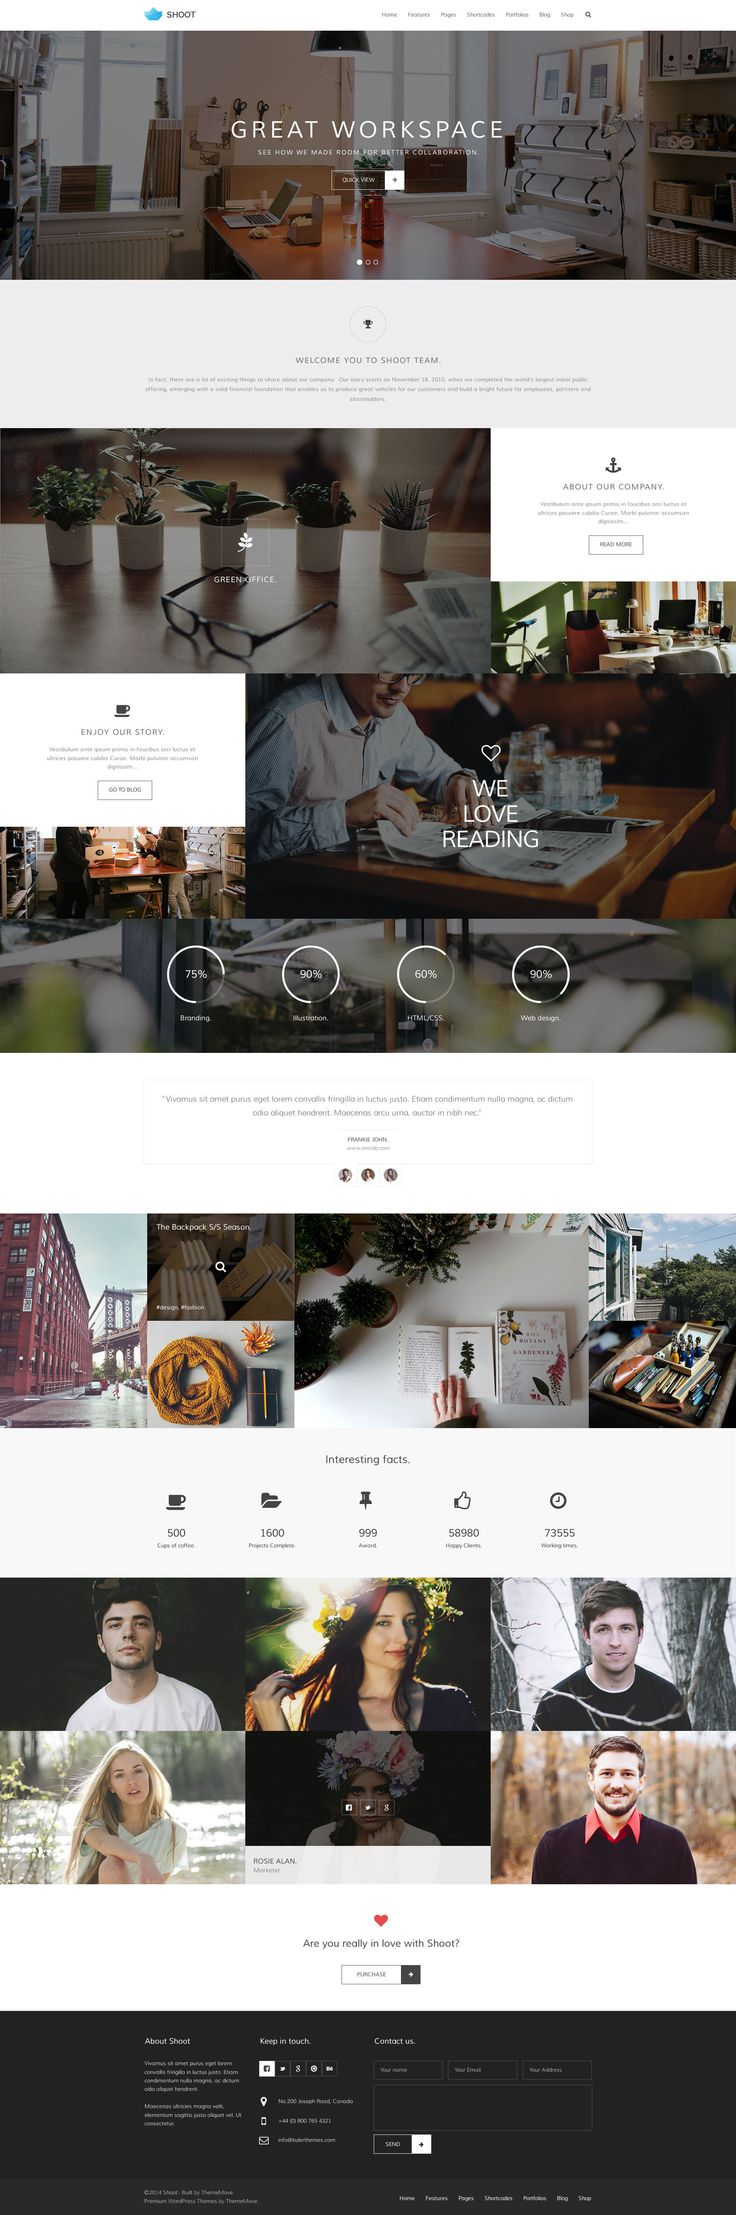 Shoot - Black & White Multi-Purpose PSD Template